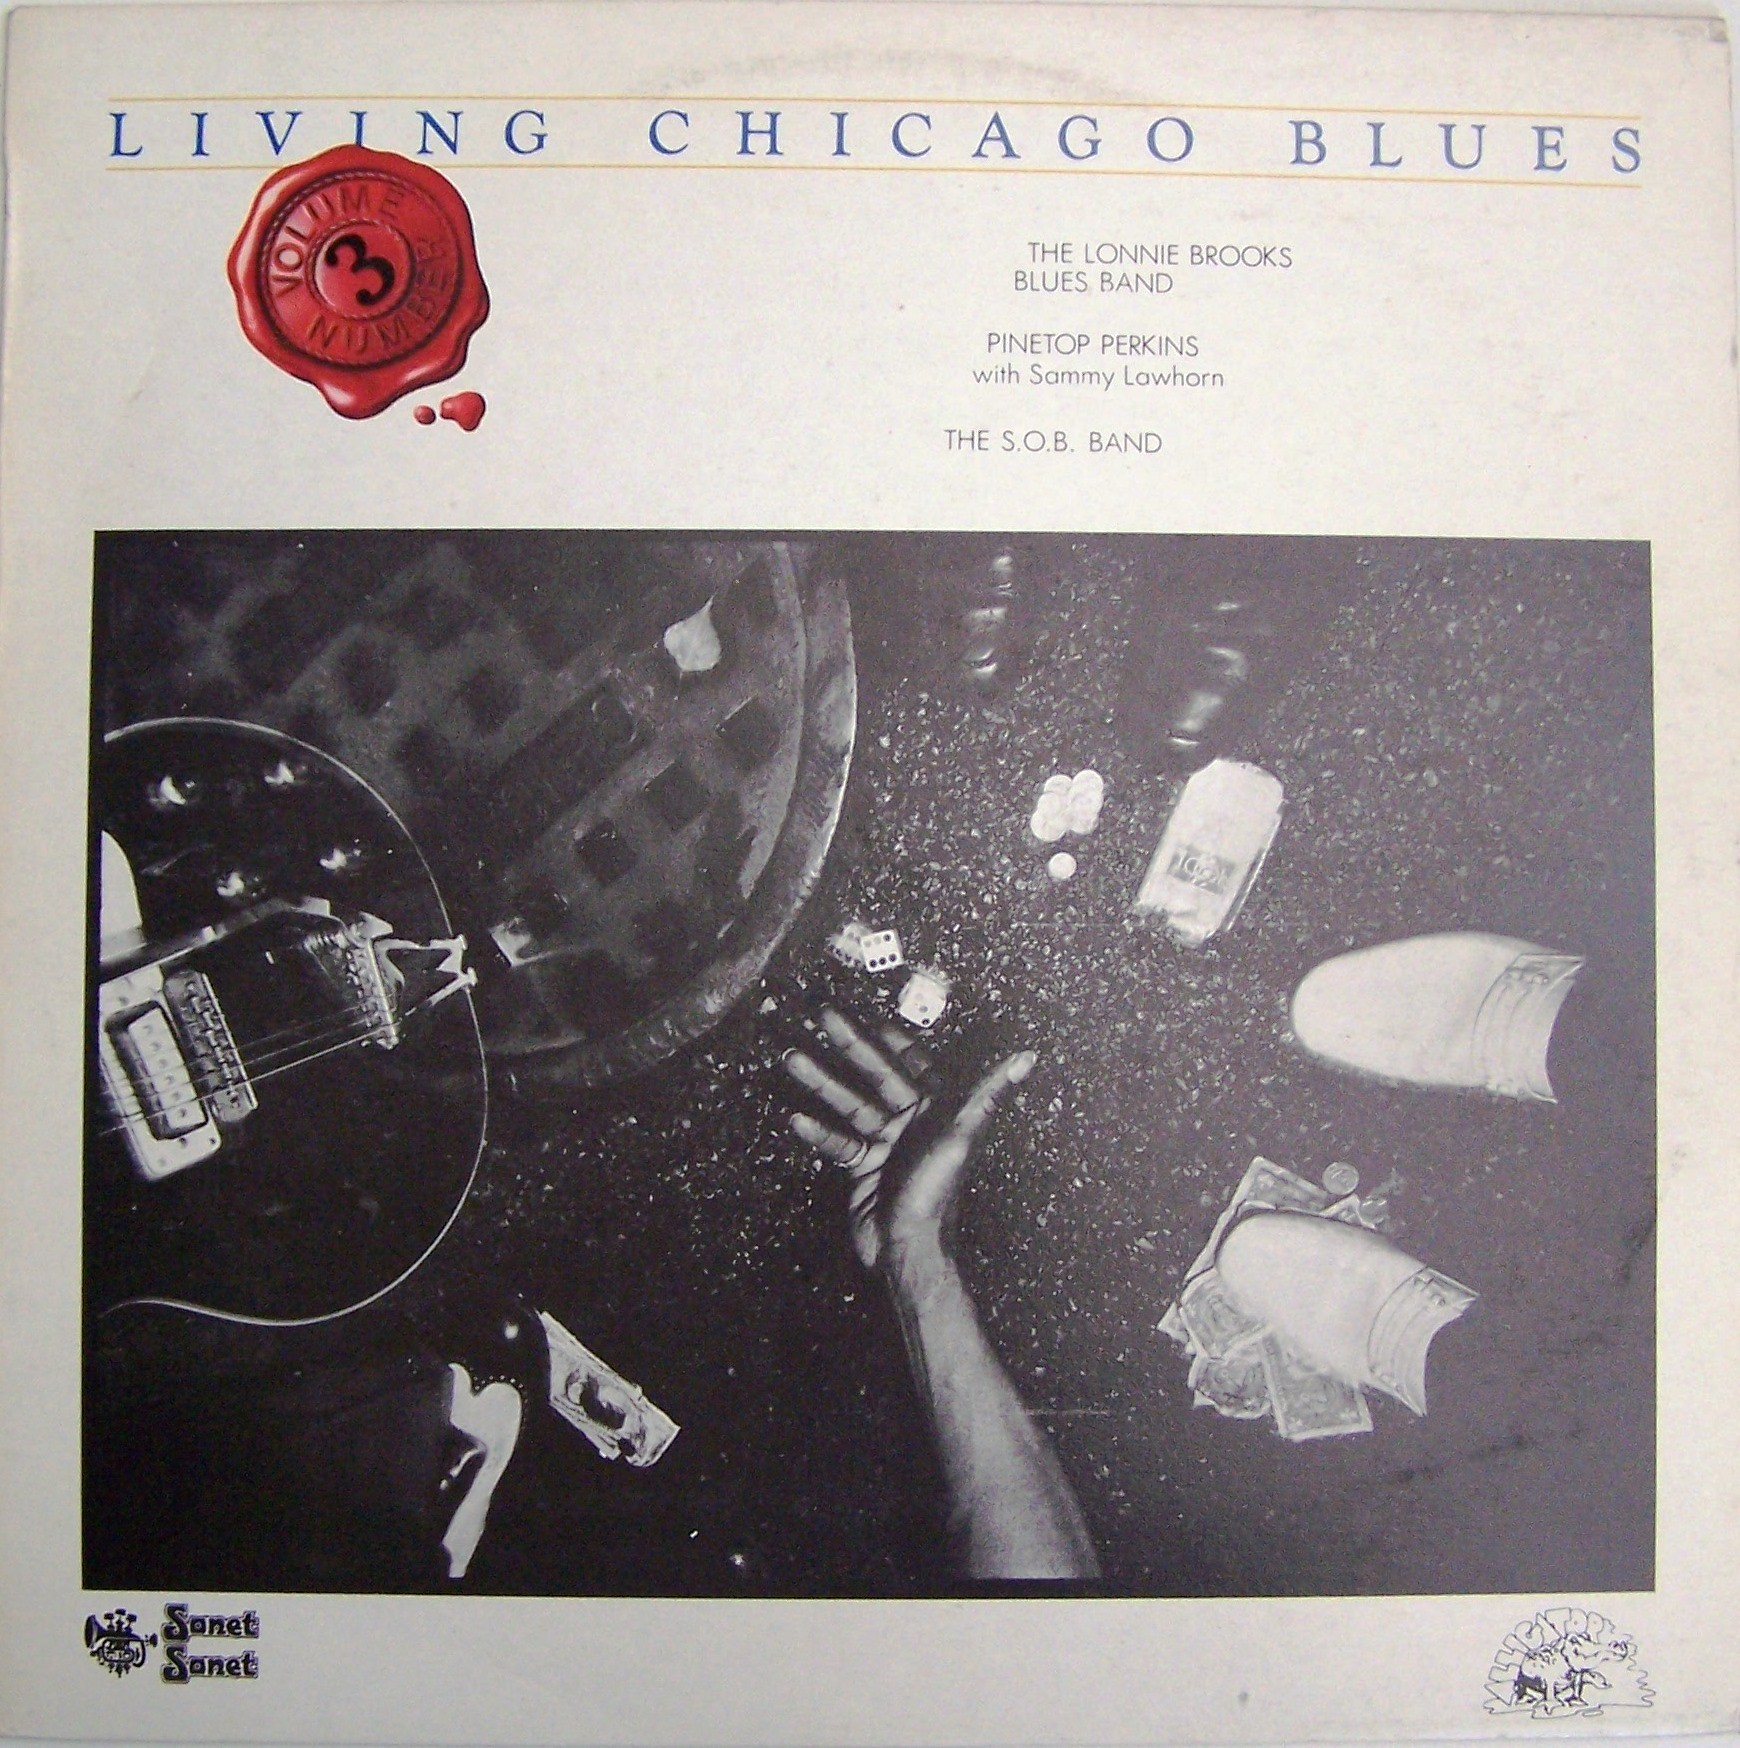 Various Artists - Living Chicago Blues Vol 3 Lonnie Brooks Band/pinetop Perkins/sob Band